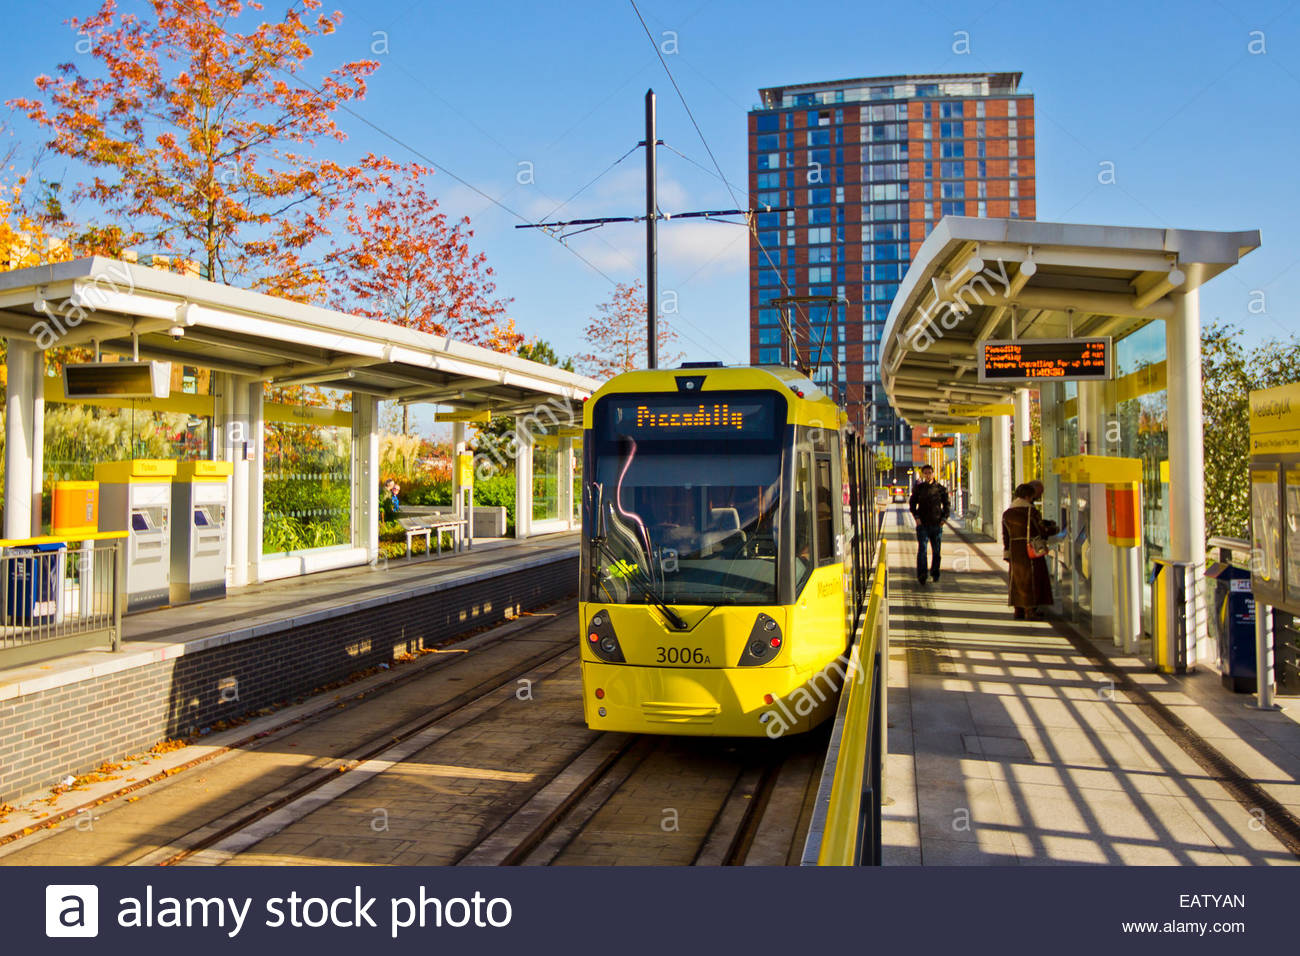 A commuter train stops for passengers at the Media City station. - Stock Image